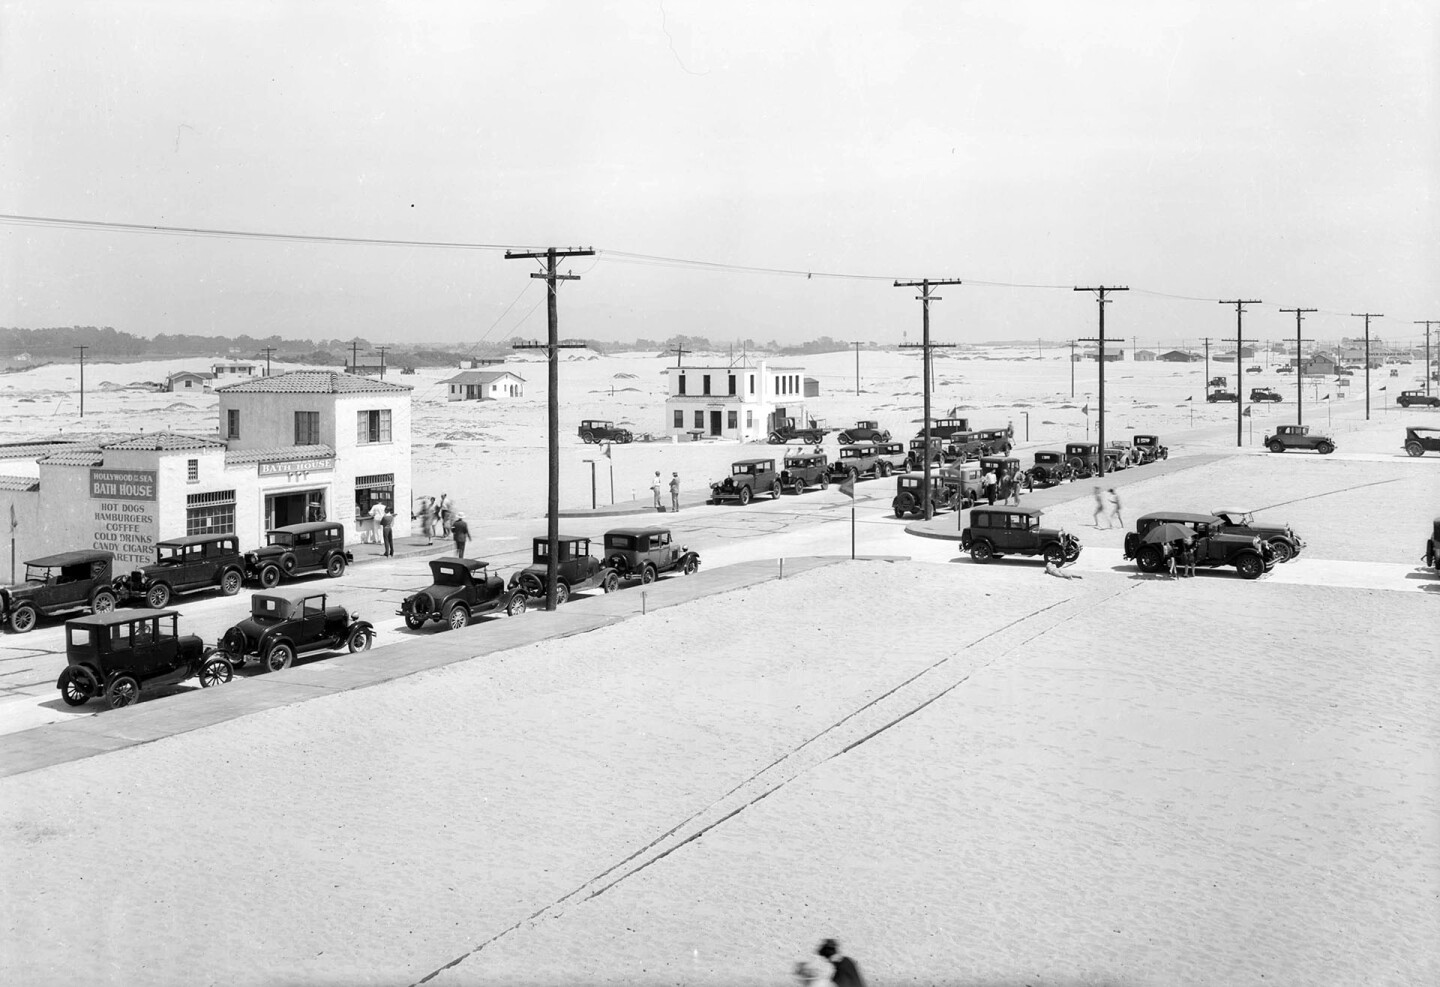 Hollywood-by-the-Sea in 1929. Courtesy of the USC Libraries - Dick Whittington Photography Collection.